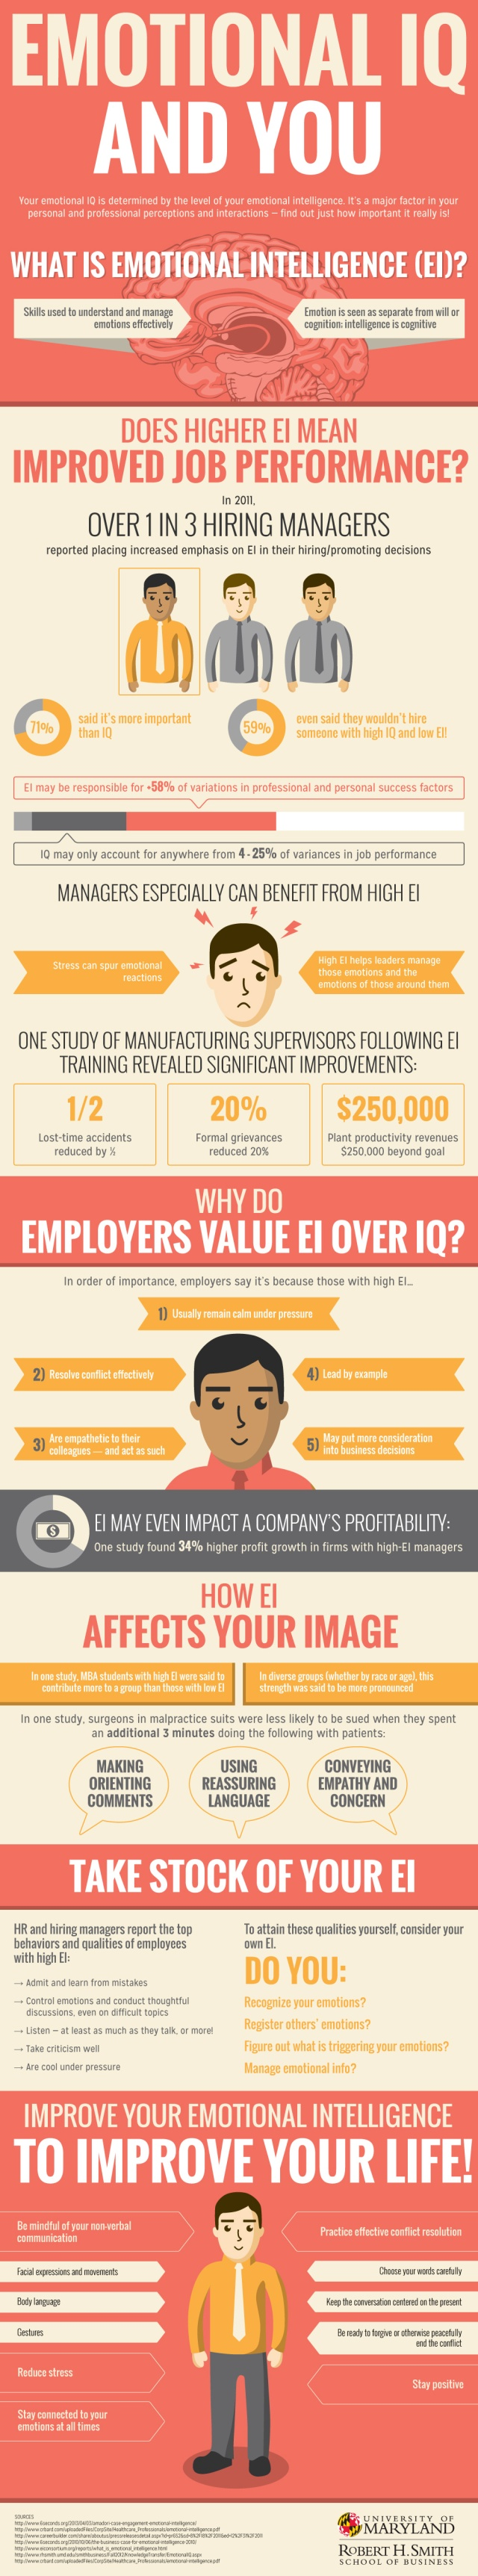 The-importance-of-Emotional-Intelligence-infographic